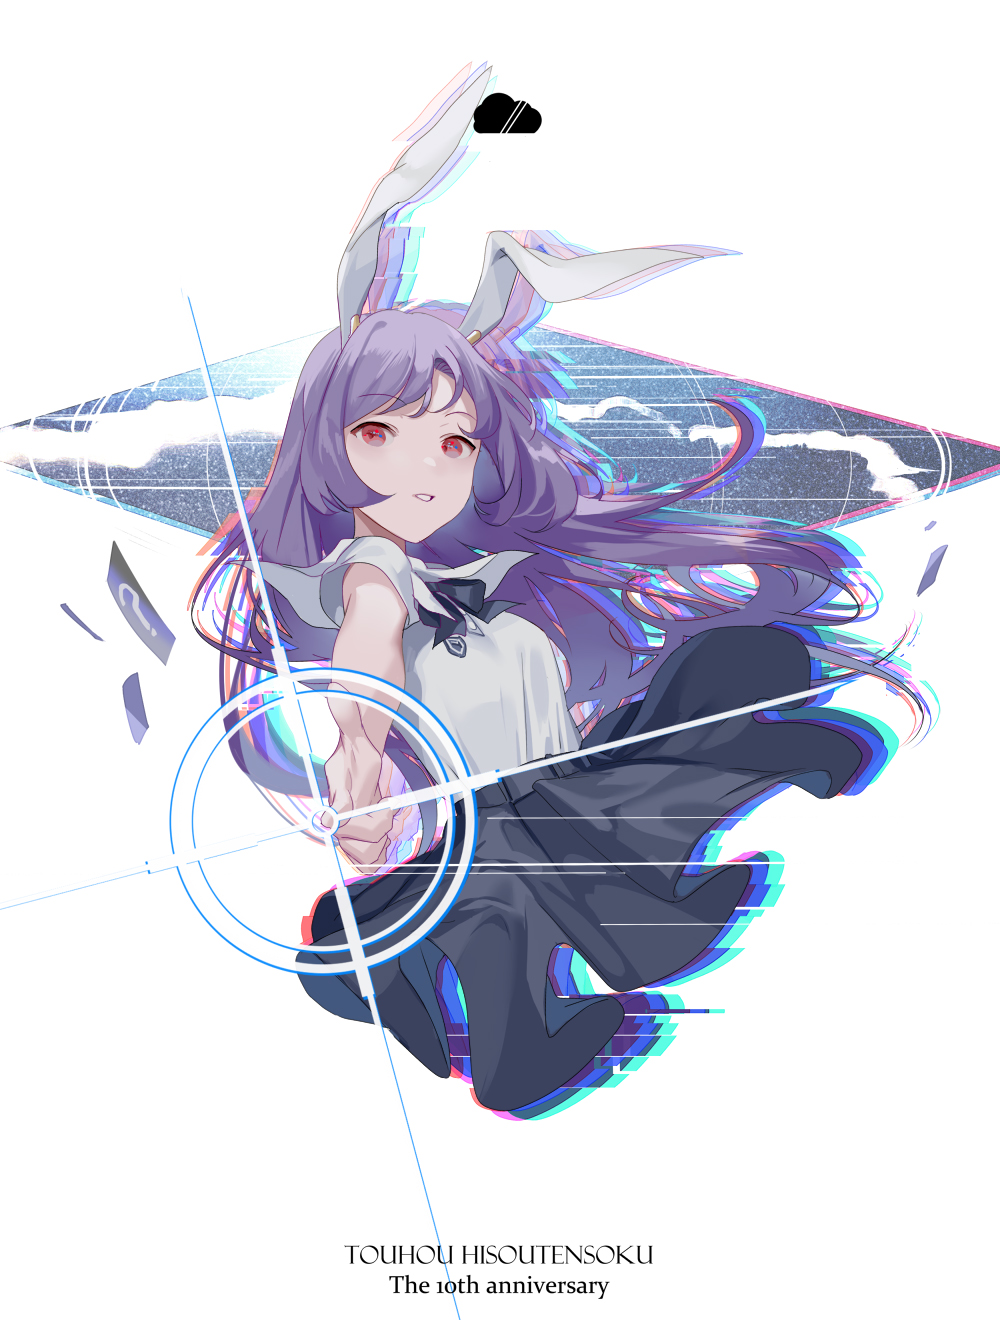 1girl ? animal_ears anniversary bangs black_skirt chromatic_aberration commentary_request copyright_name cropped_torso eyebrows_visible_through_hair highres hillly_(maiwetea) long_hair looking_at_viewer parted_lips pointing pointing_at_viewer purple_hair rabbit_ears red_eyes reisen_udongein_inaba shirt short_sleeves simple_background skirt solo touhou touhou_hisoutensoku upper_body white_background white_shirt